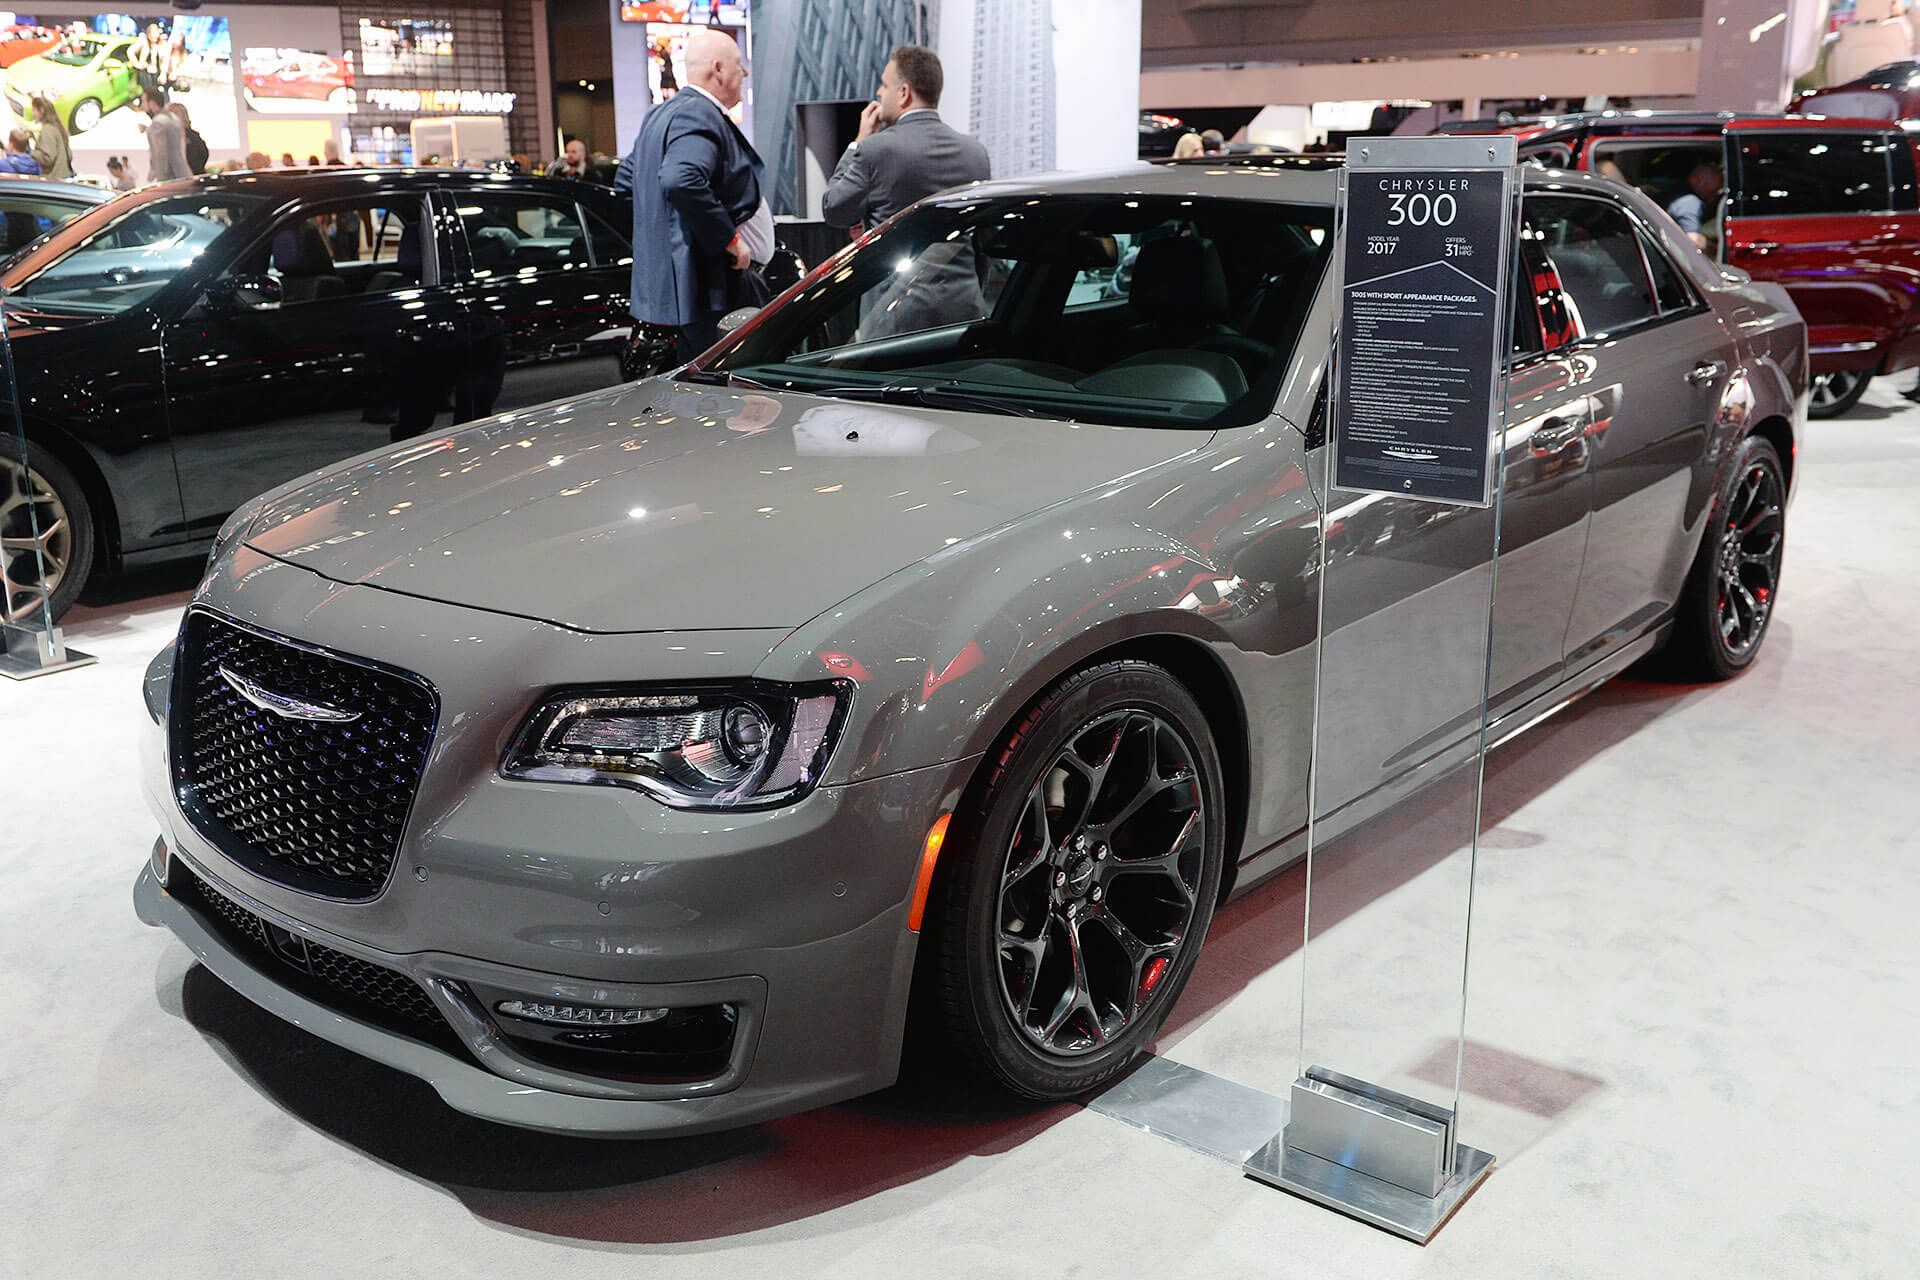 buy popular ad898 c6fb0 2017 Chrysler – 2017 Chrysler comes with new Sport Appearance Packages,  that s going to make it look fitter and handsome than before.